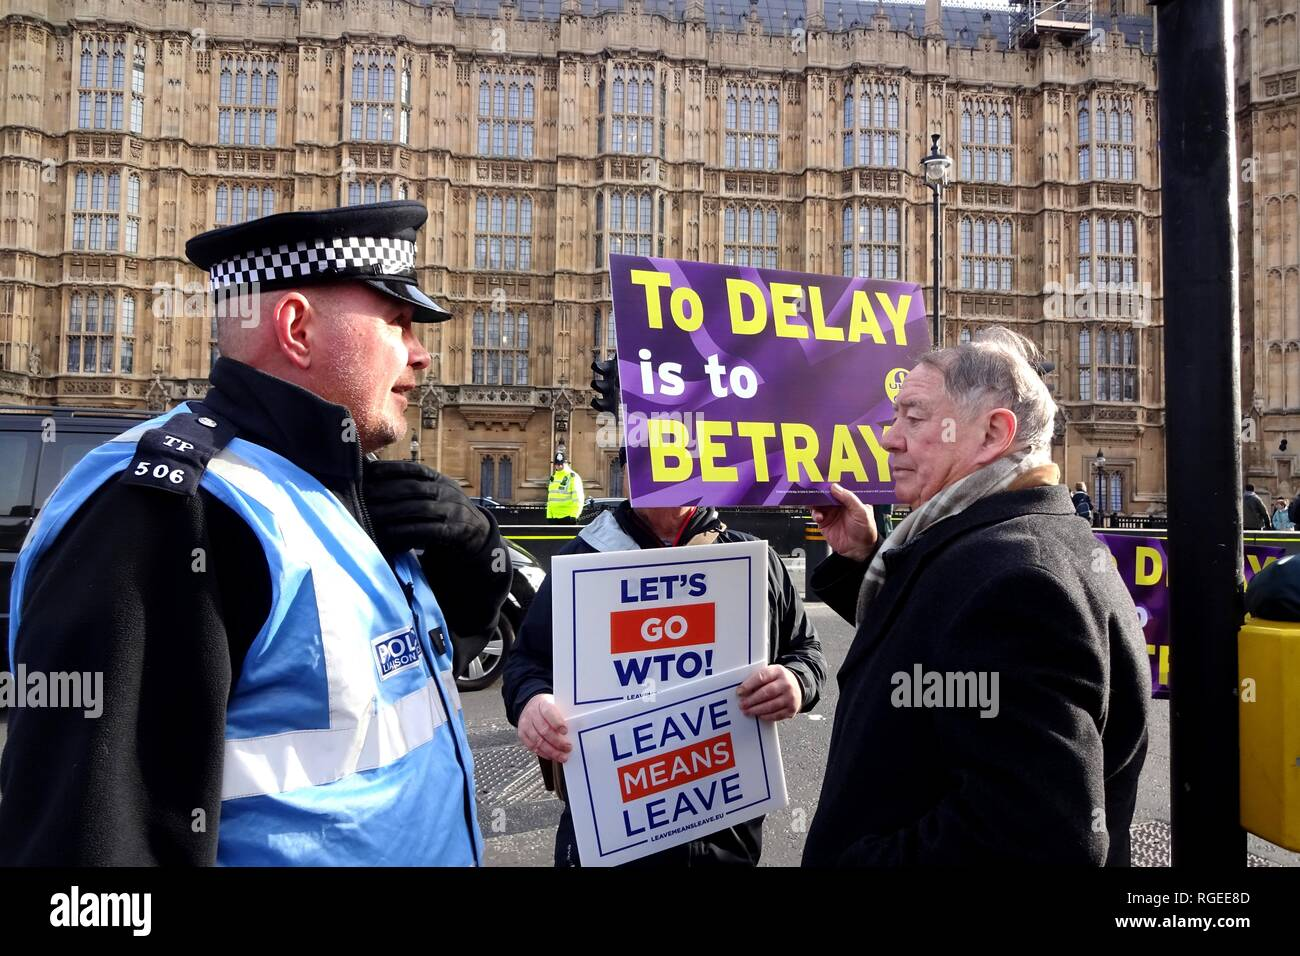 """London, UK. 29th Jan, 2019. """"Leave Means Leave"""" supporters congregate outside Parliament ahead of Brexit vote. Credit: Brian Minkoff/Alamy Live News Stock Photo"""